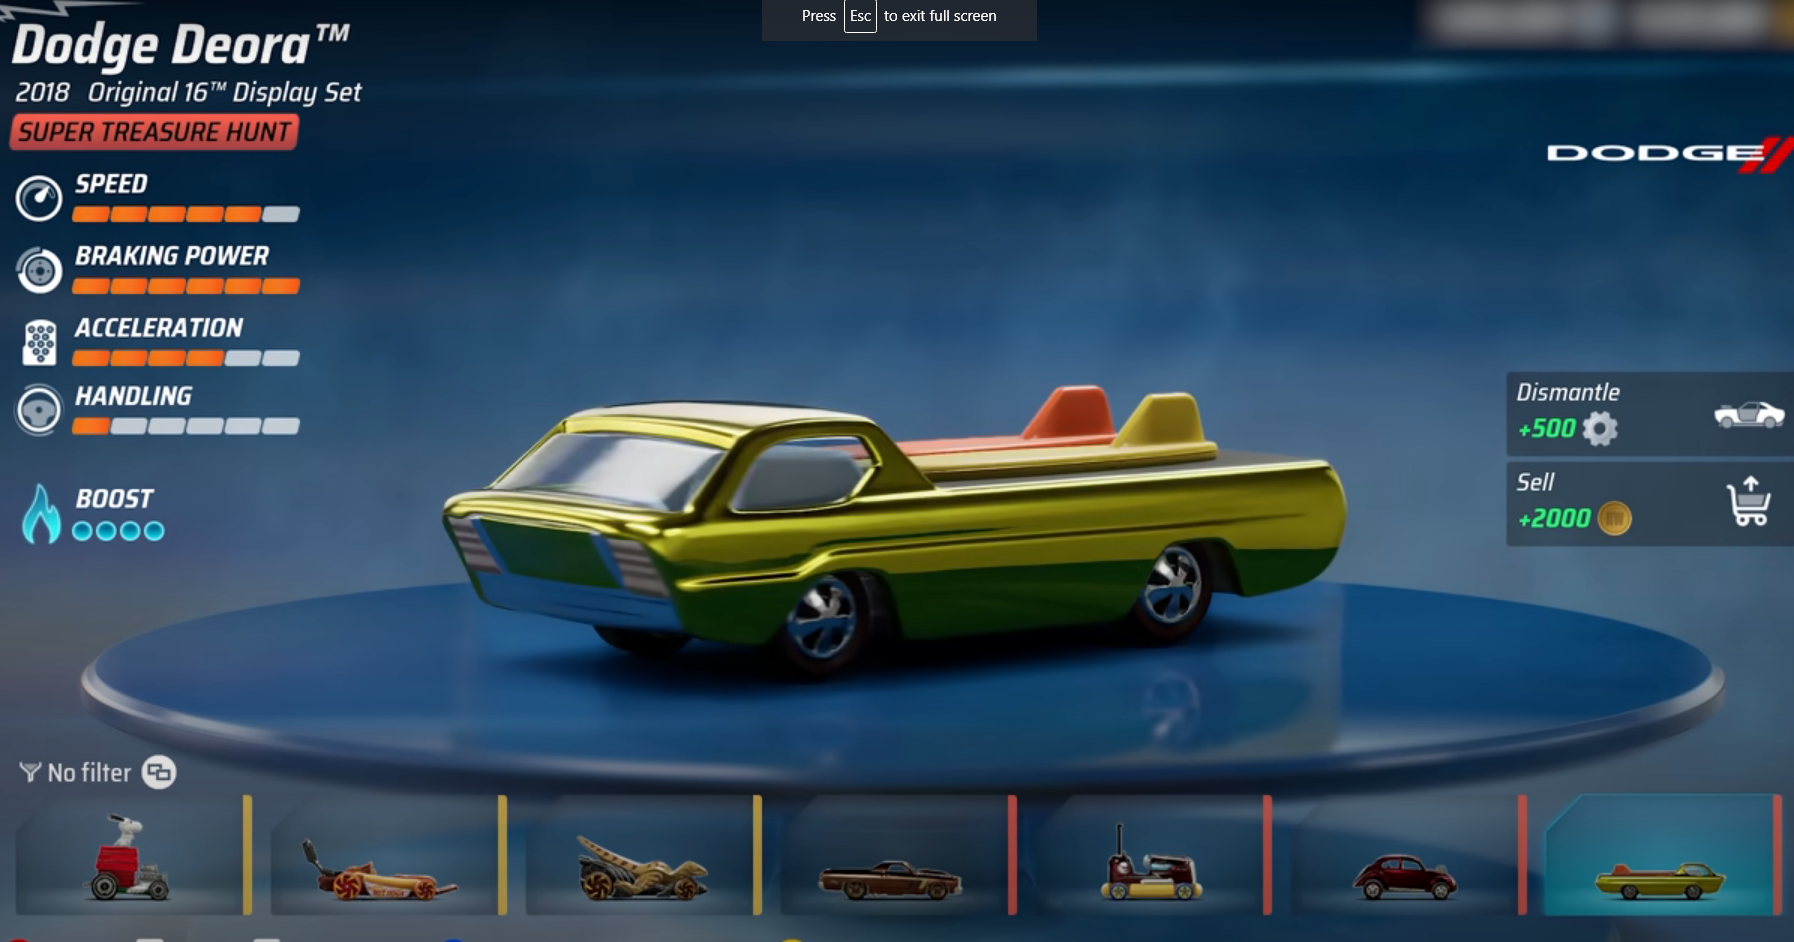 HOT WHEELS UNLEASHED™ How to Unlock Dodge Deora Tips - Unlocking and Obtaining Deora - 66B6B08